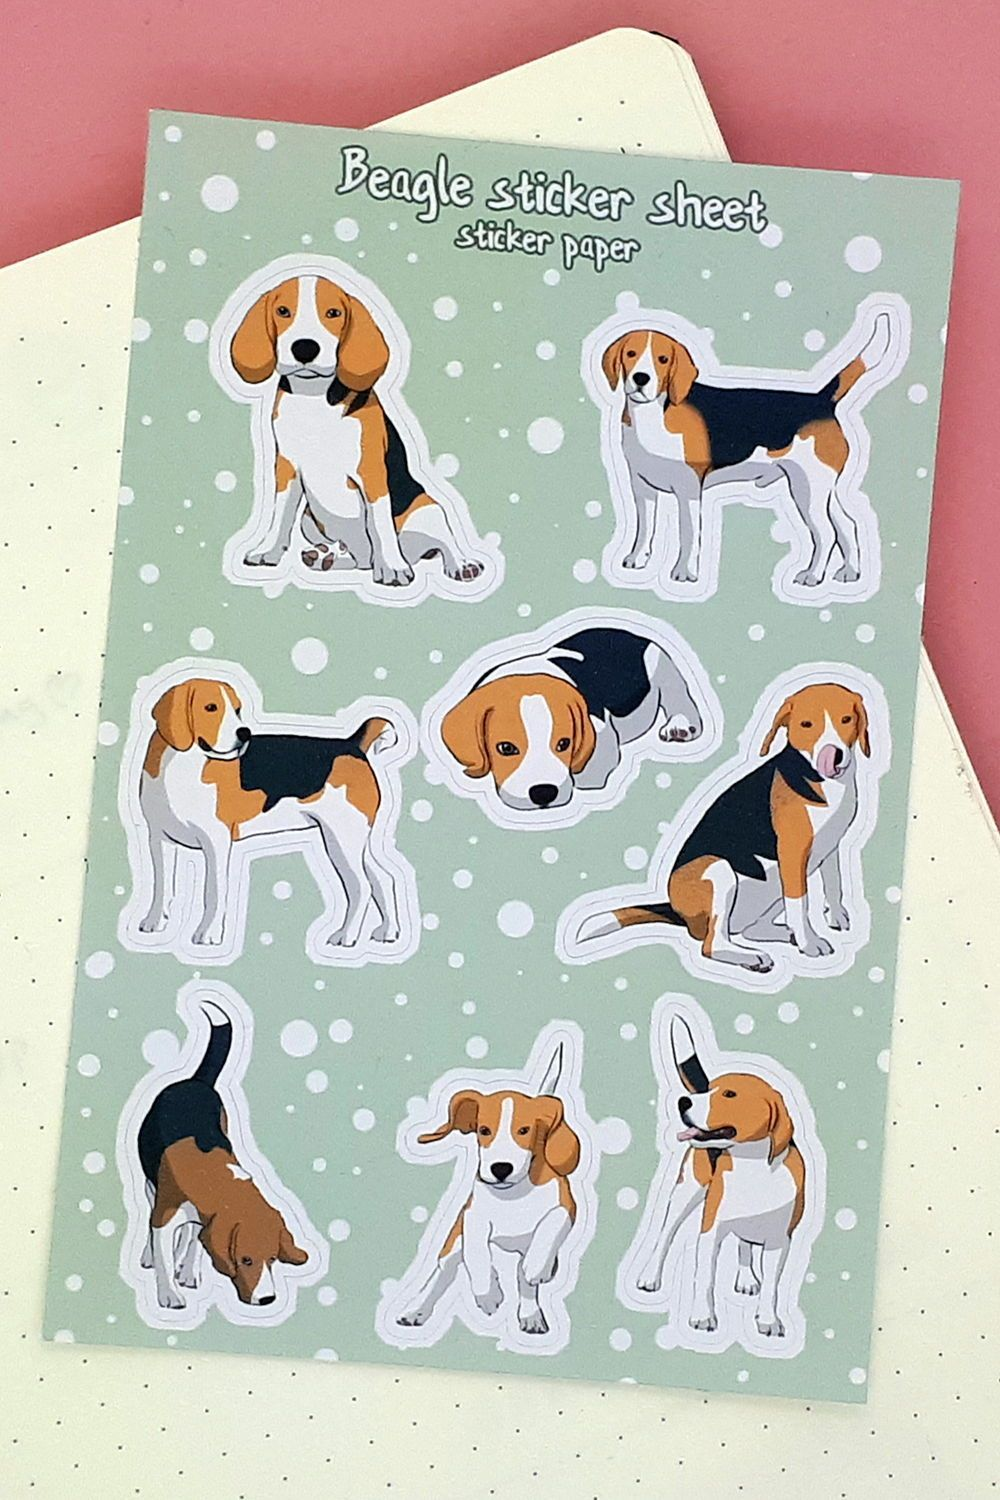 8 charming beagle stickers for your bullet journal planner | Etsy